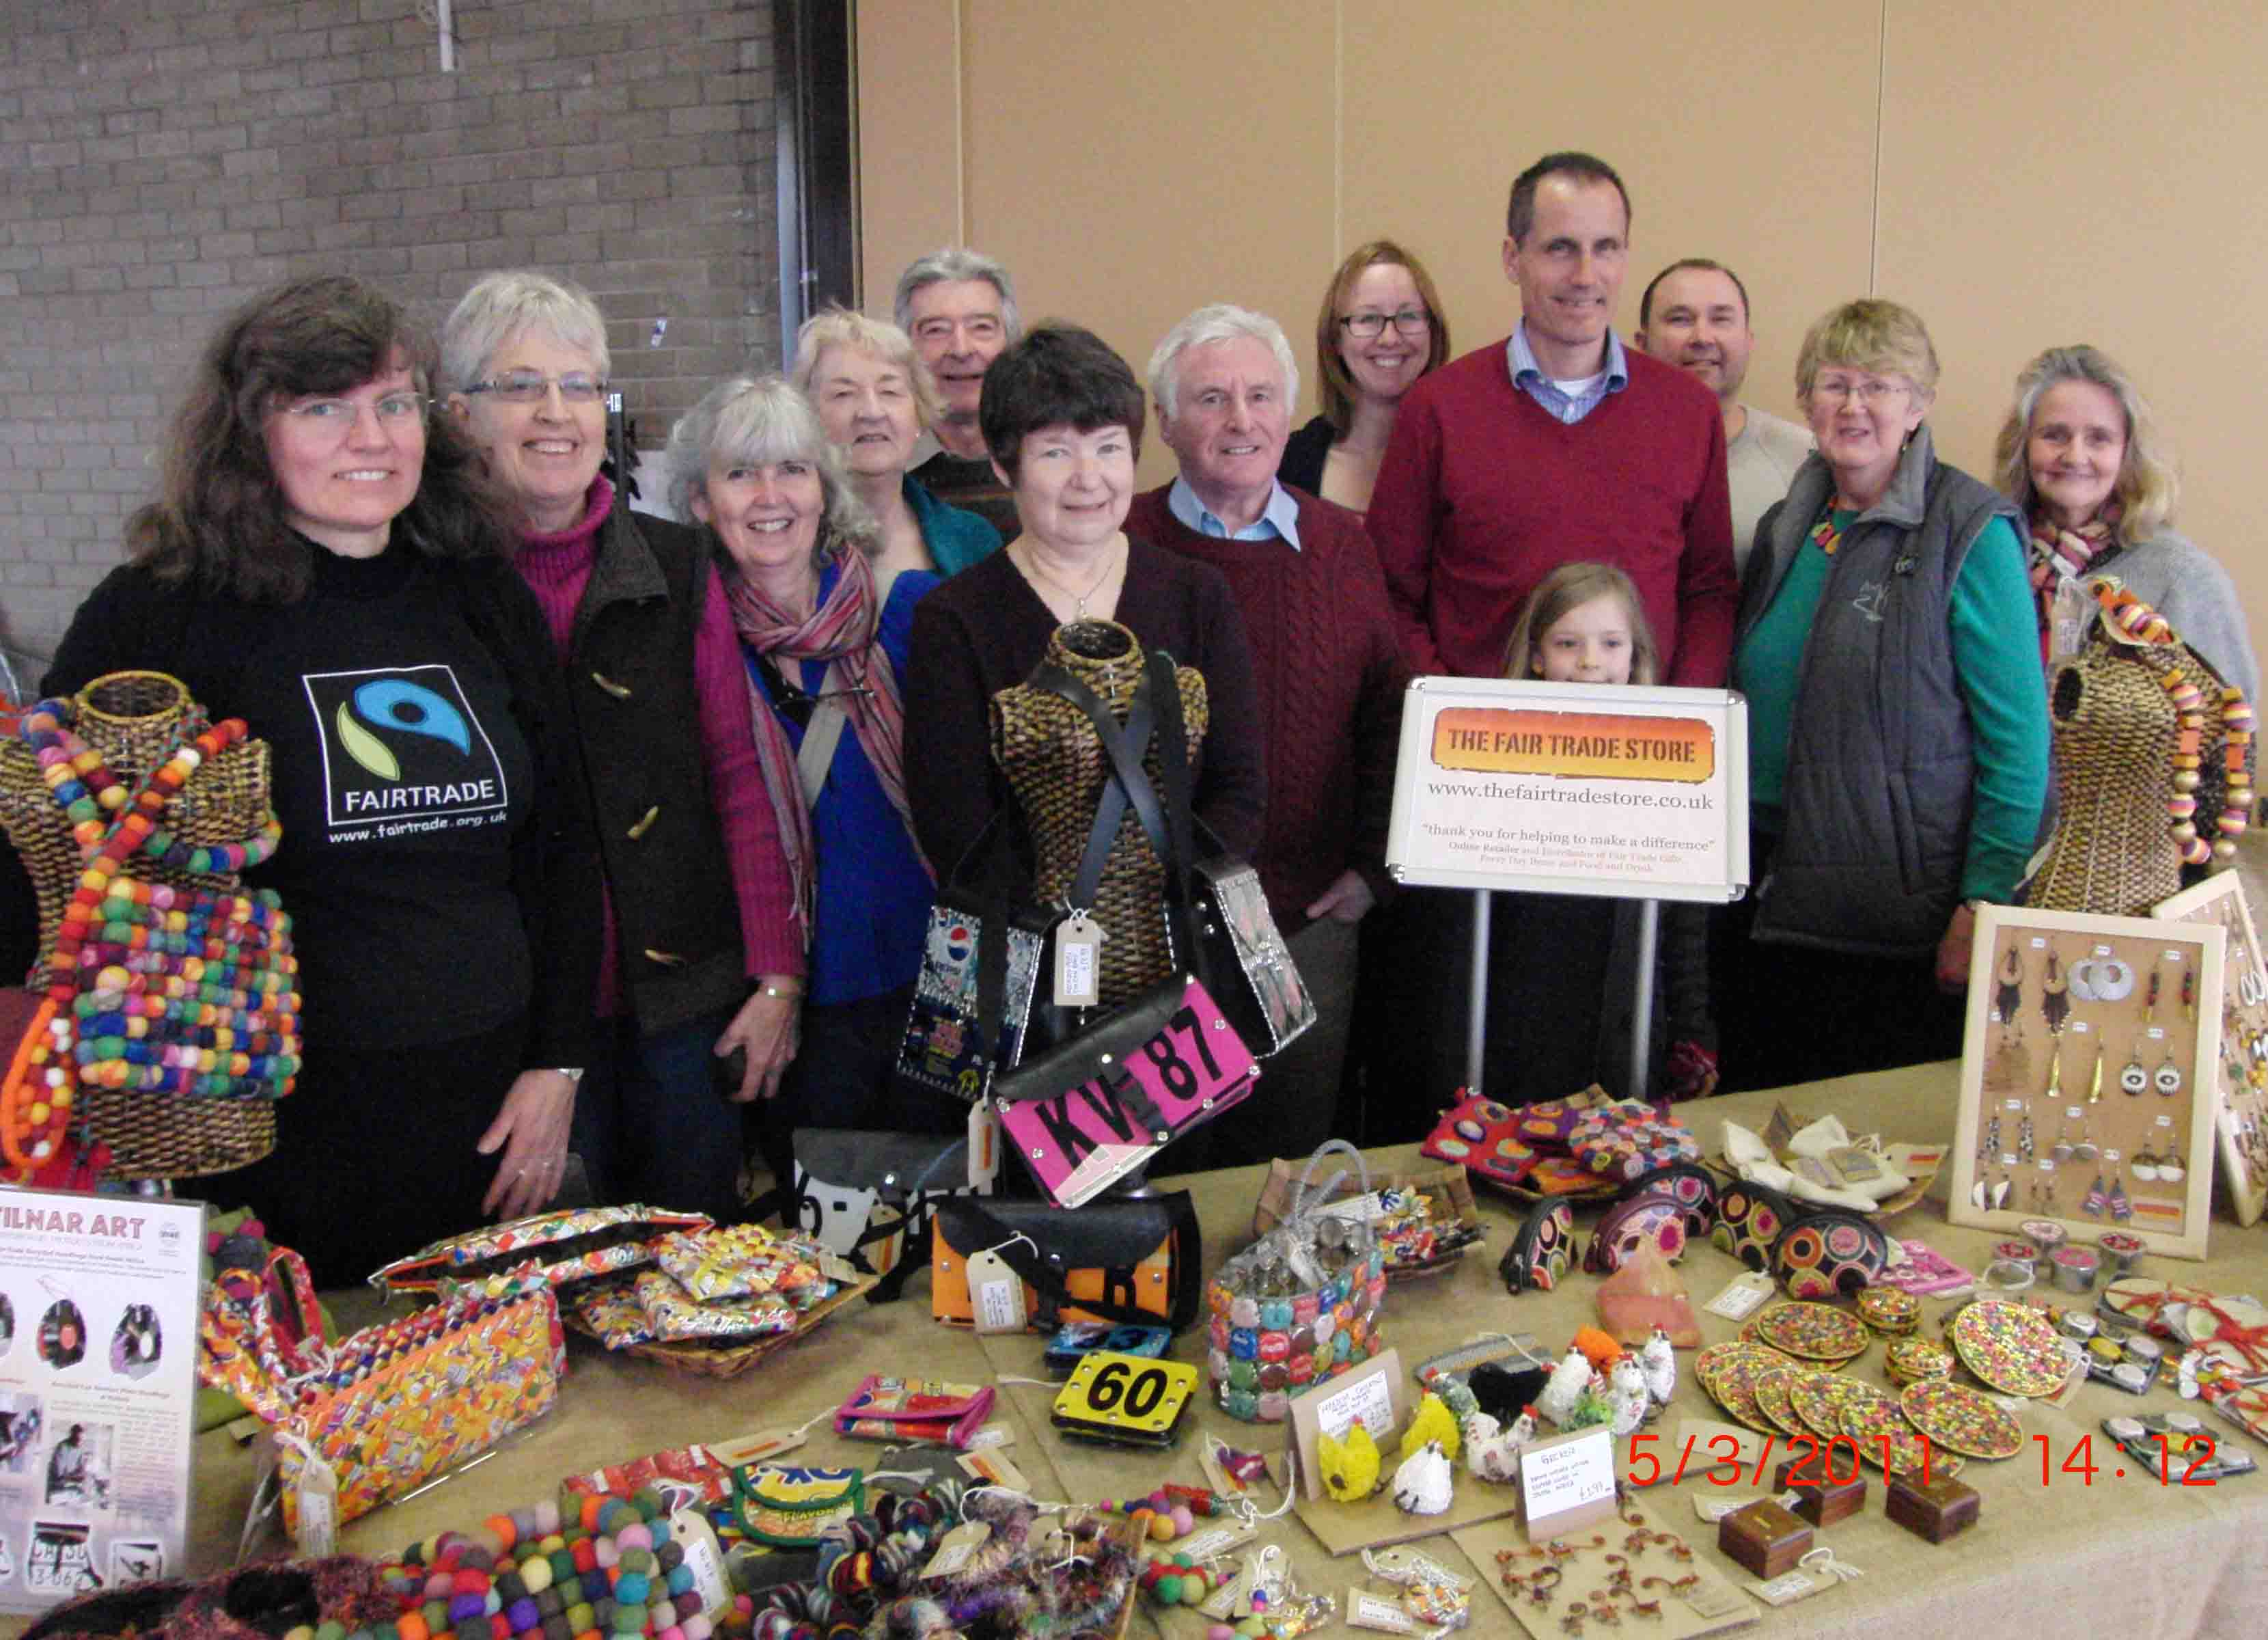 Sefton Central Labour MP Bill Esterson and Cllr Steve McGinnity with helpers at the Justice & Peace Fairtrade event at St Helen's Church in Crosby.